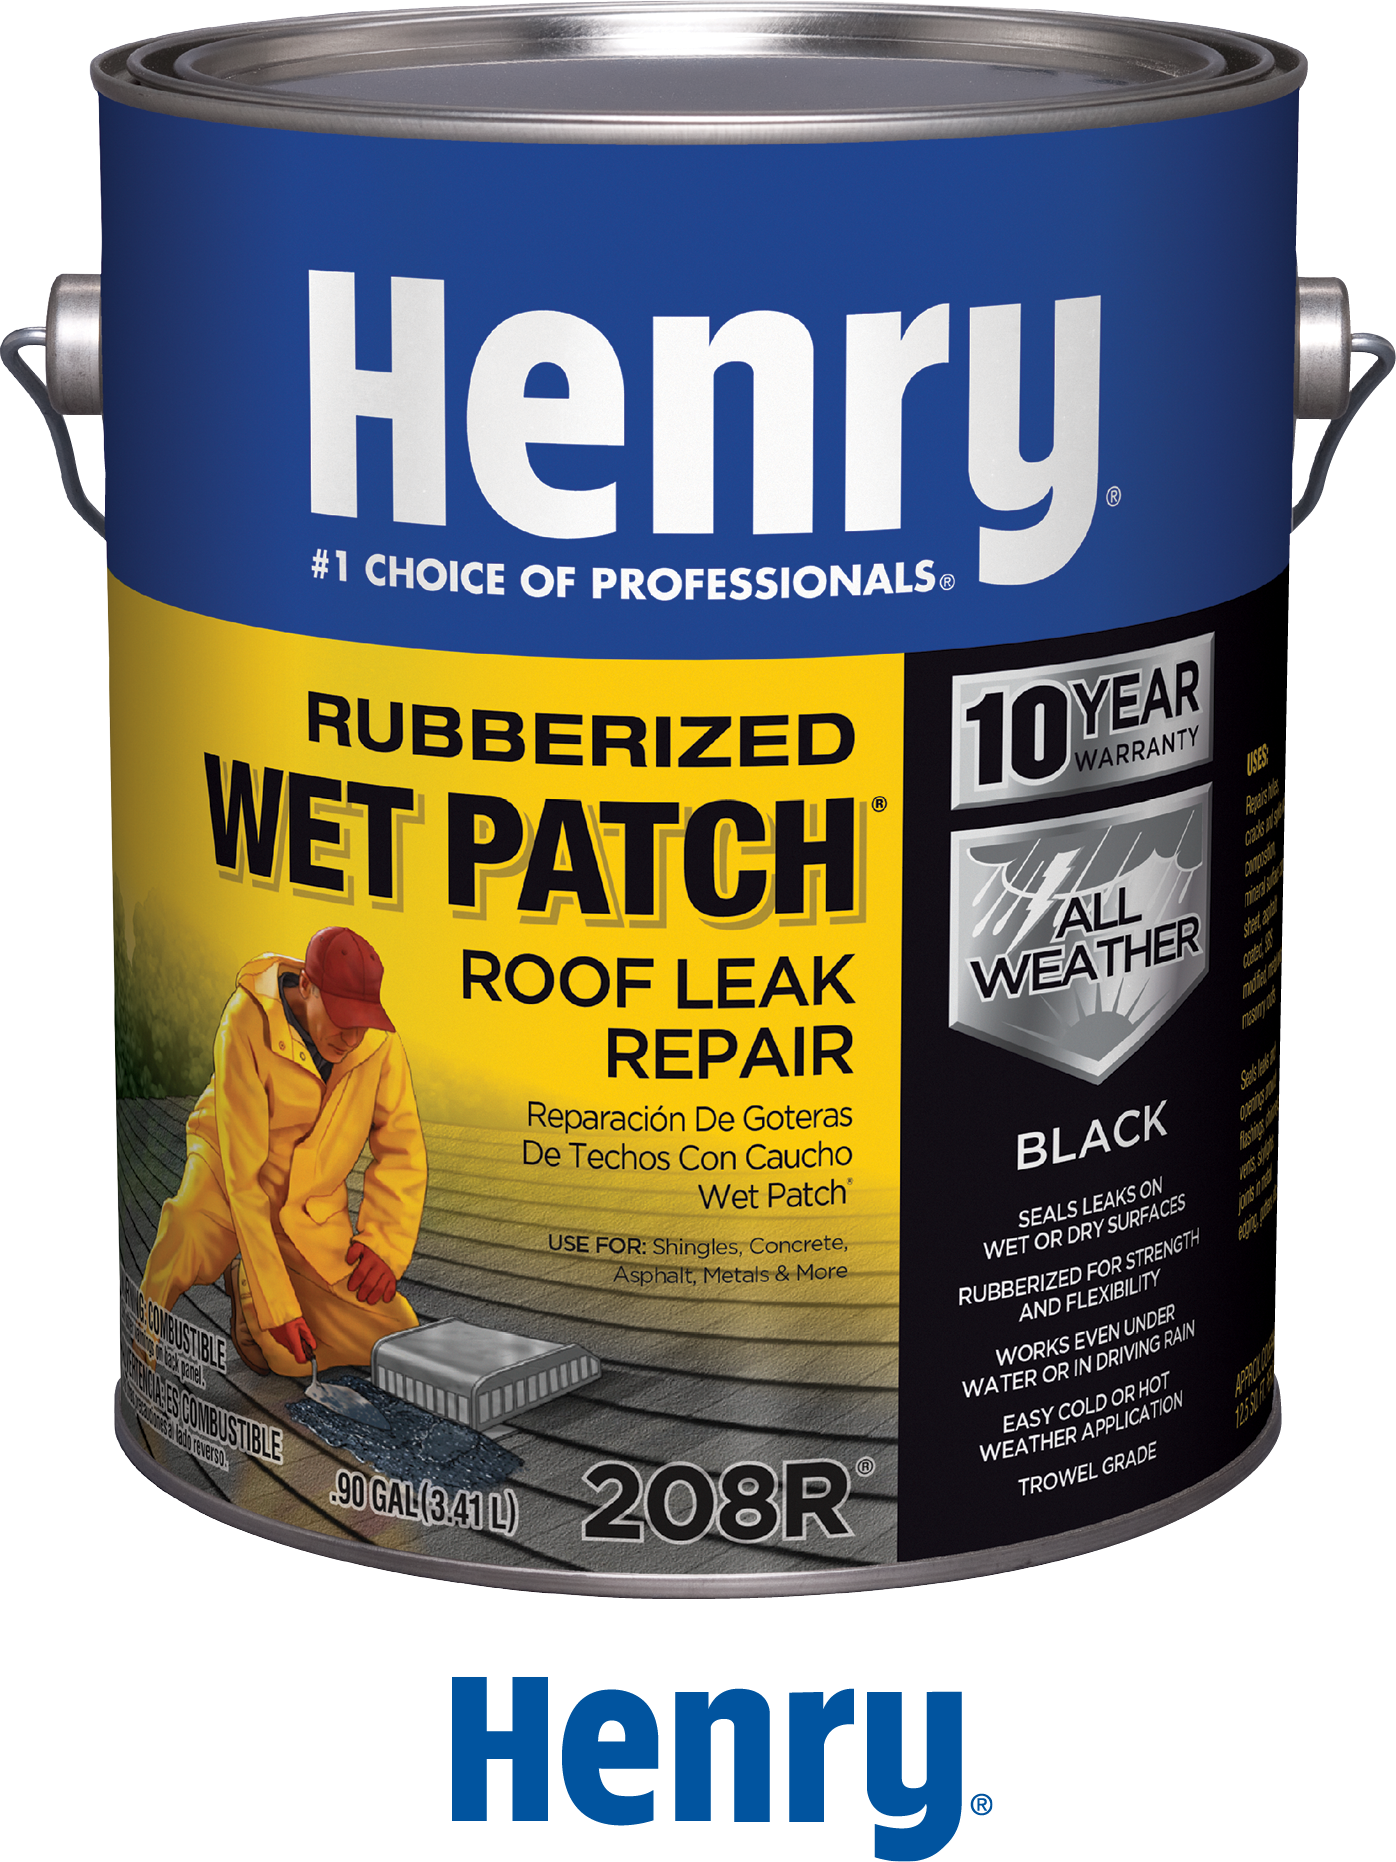 Henry paint can